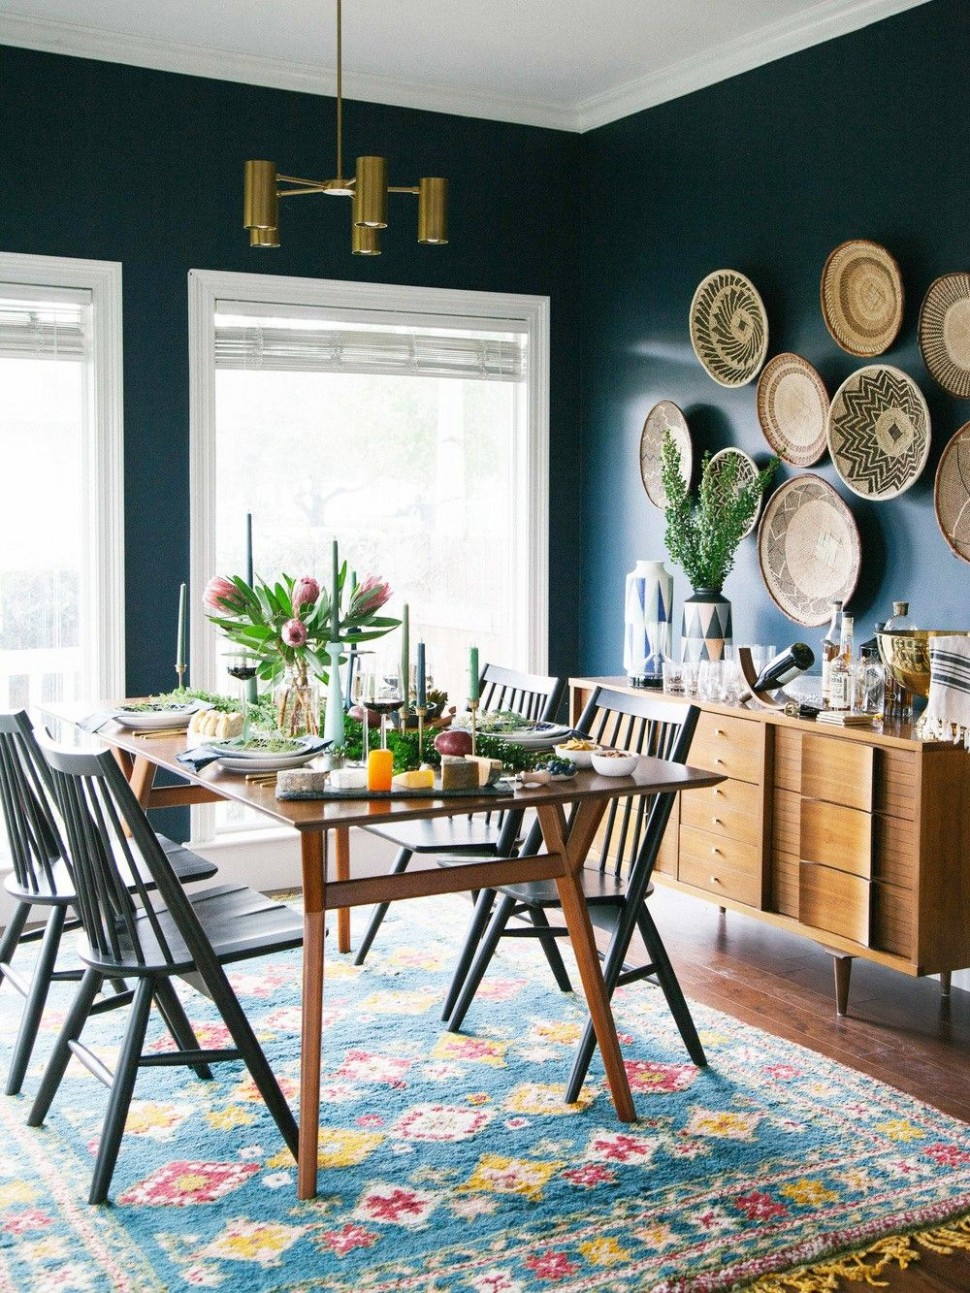 10 Beautiful Bohemian Dining Rooms We Love  Dining room blue  - Dining Room Ideas Blue Walls